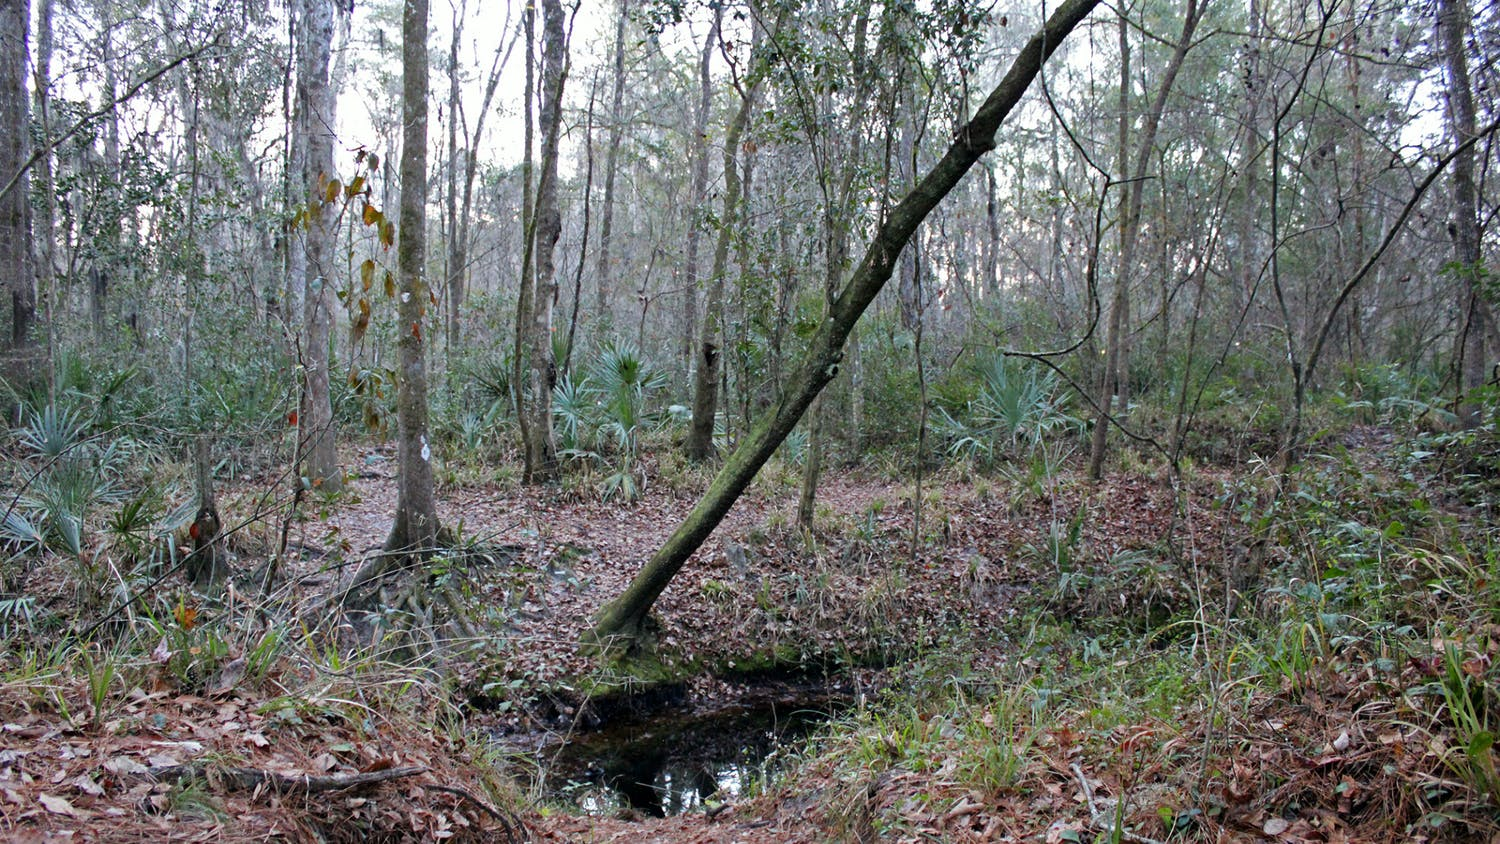 Trees line a creek next to the hiking trail at Loblolly Woods Nature Park in Gainesville on Friday, Jan. 15, 2021. The city commission has approved a  plan that will protect Gainesville's urban forest from development projects.